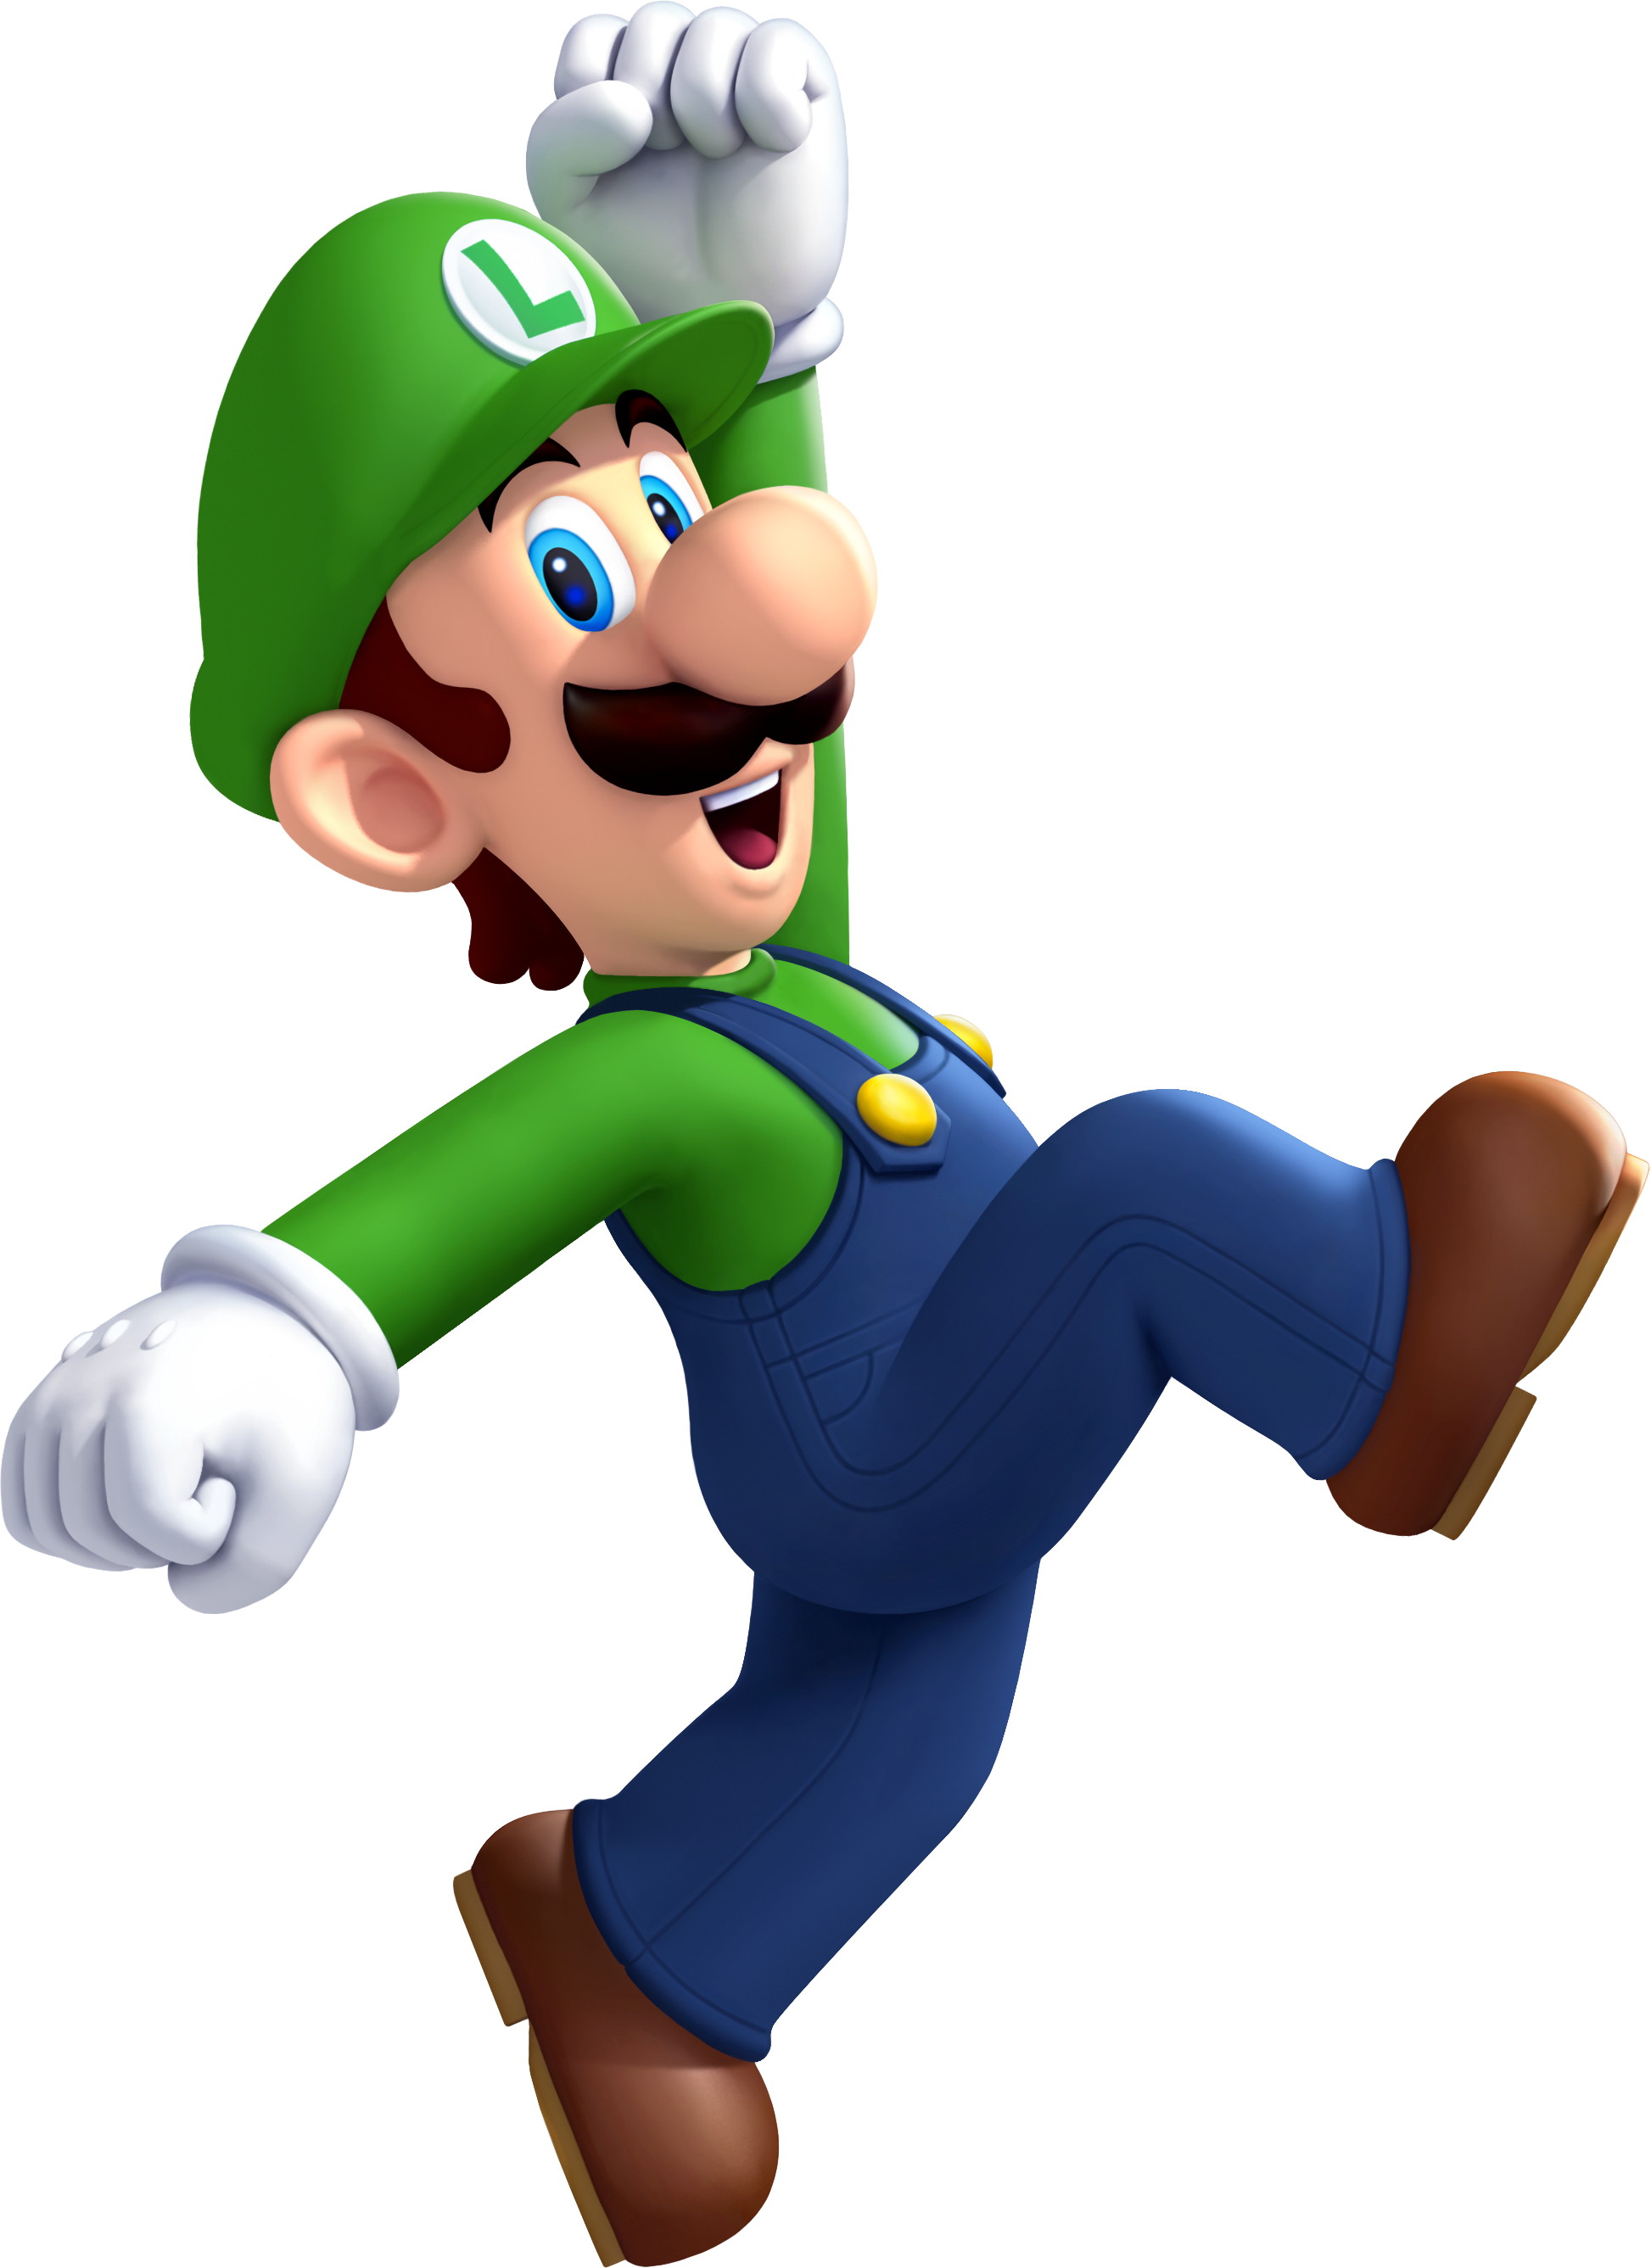 Hurt clipart luigi. Smashpedia fandom powered by